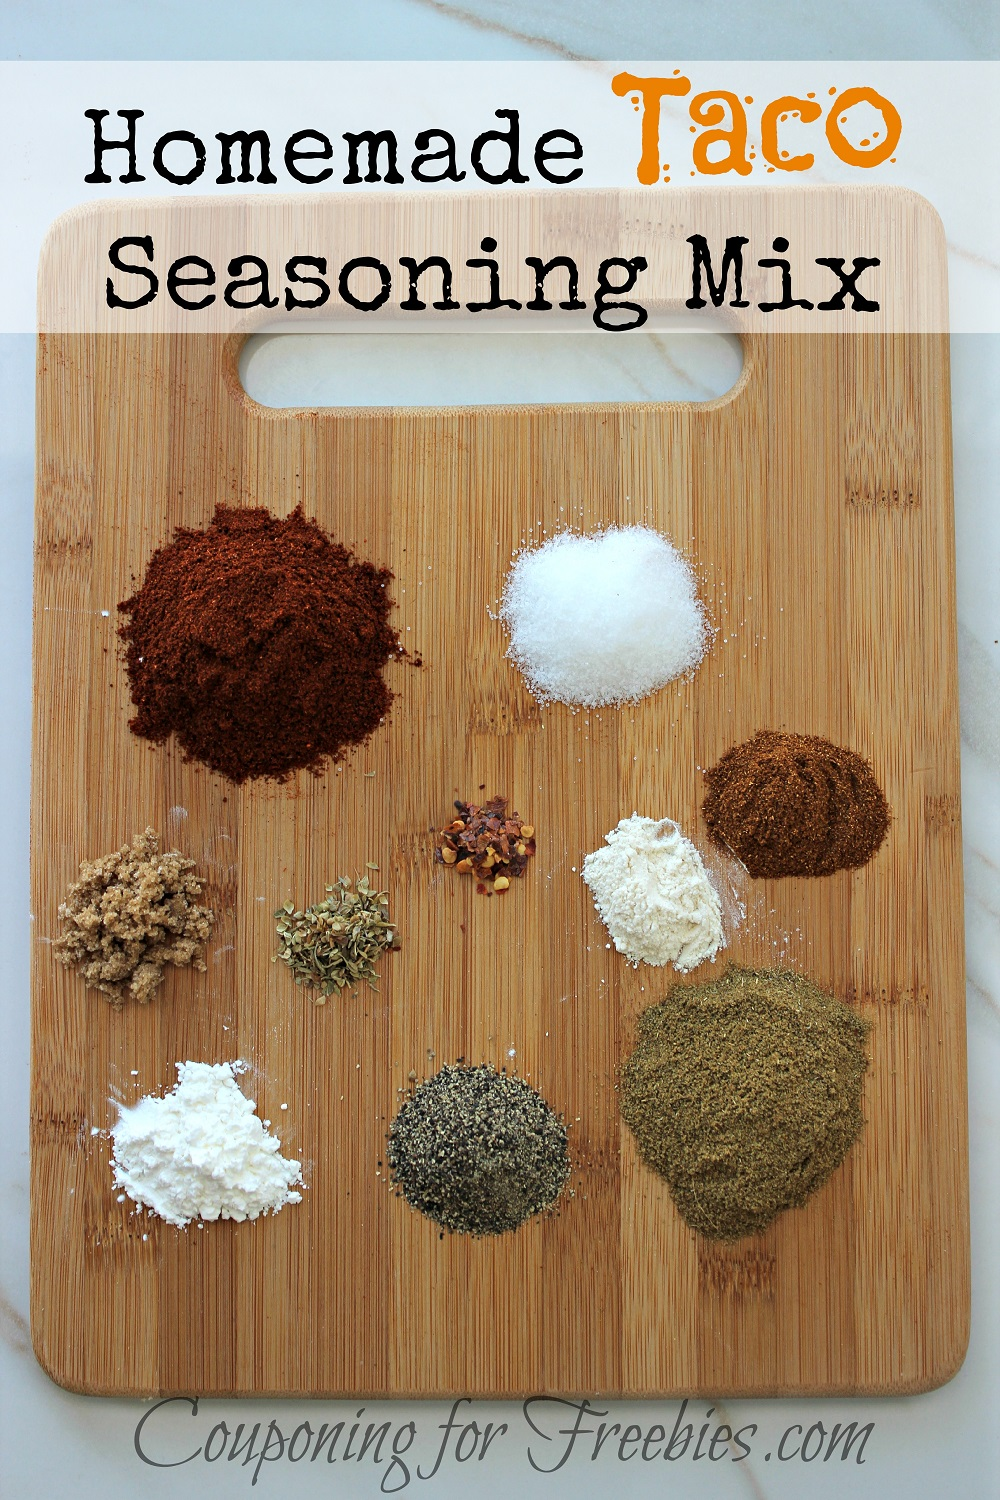 Wood cutting board with little piles of spices needed to make this seasoning. Text overlay at top that says Homemade Taco Seasoning